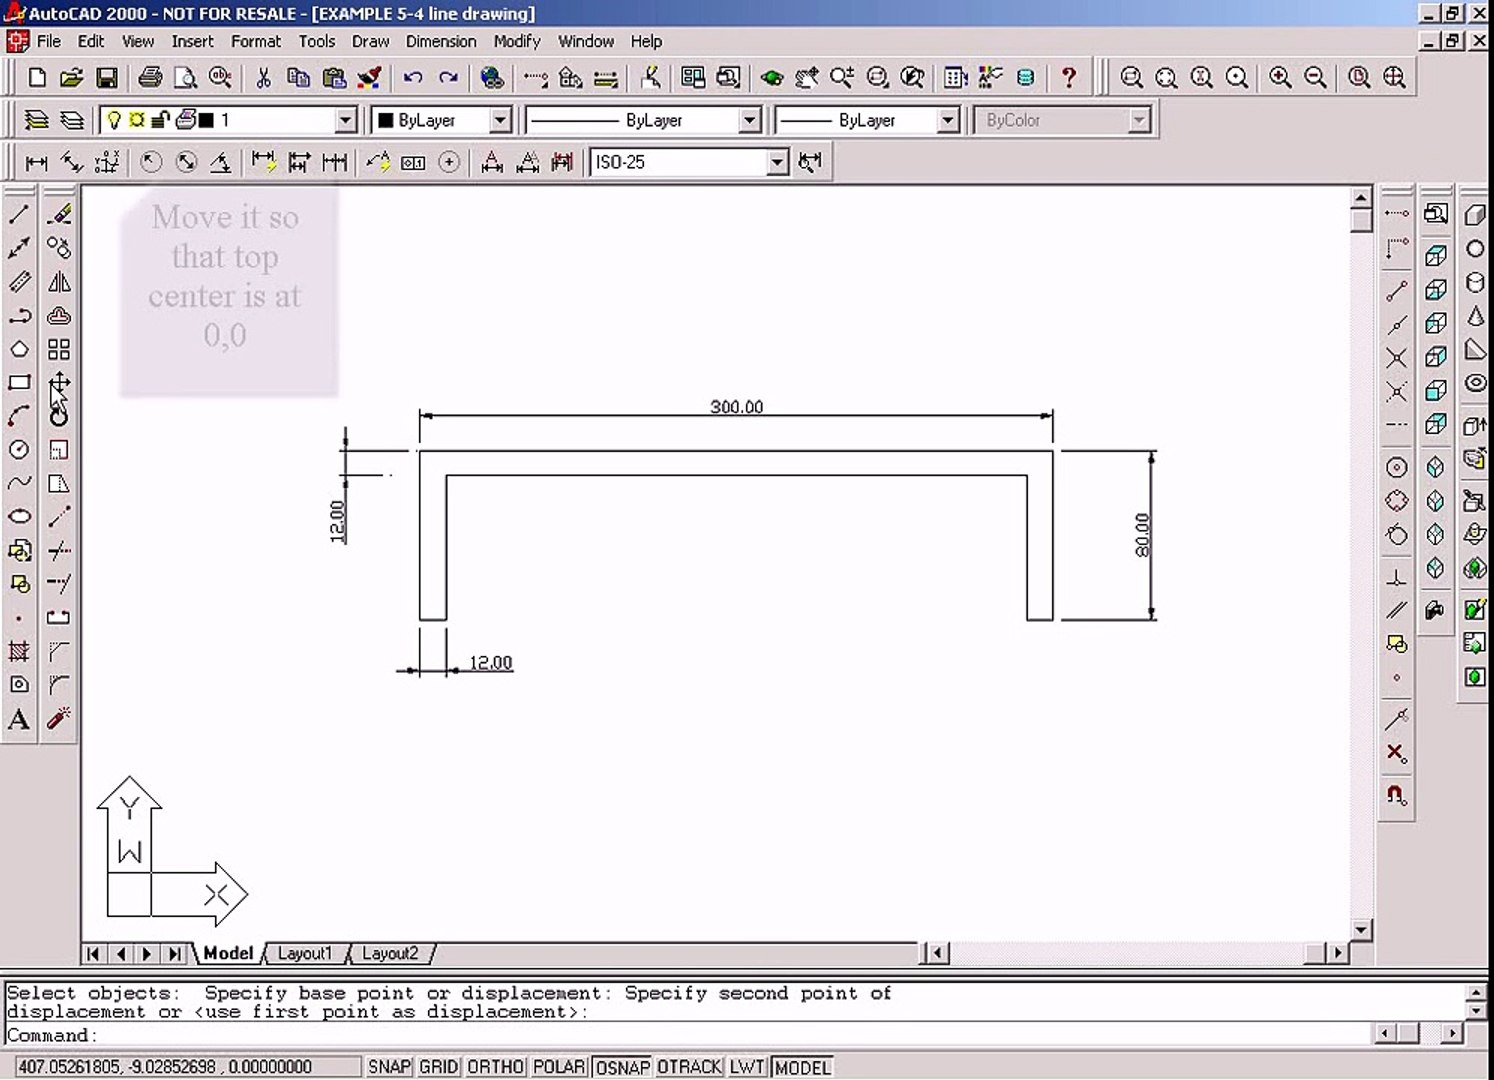 Moment of Inertia by AutoCAD